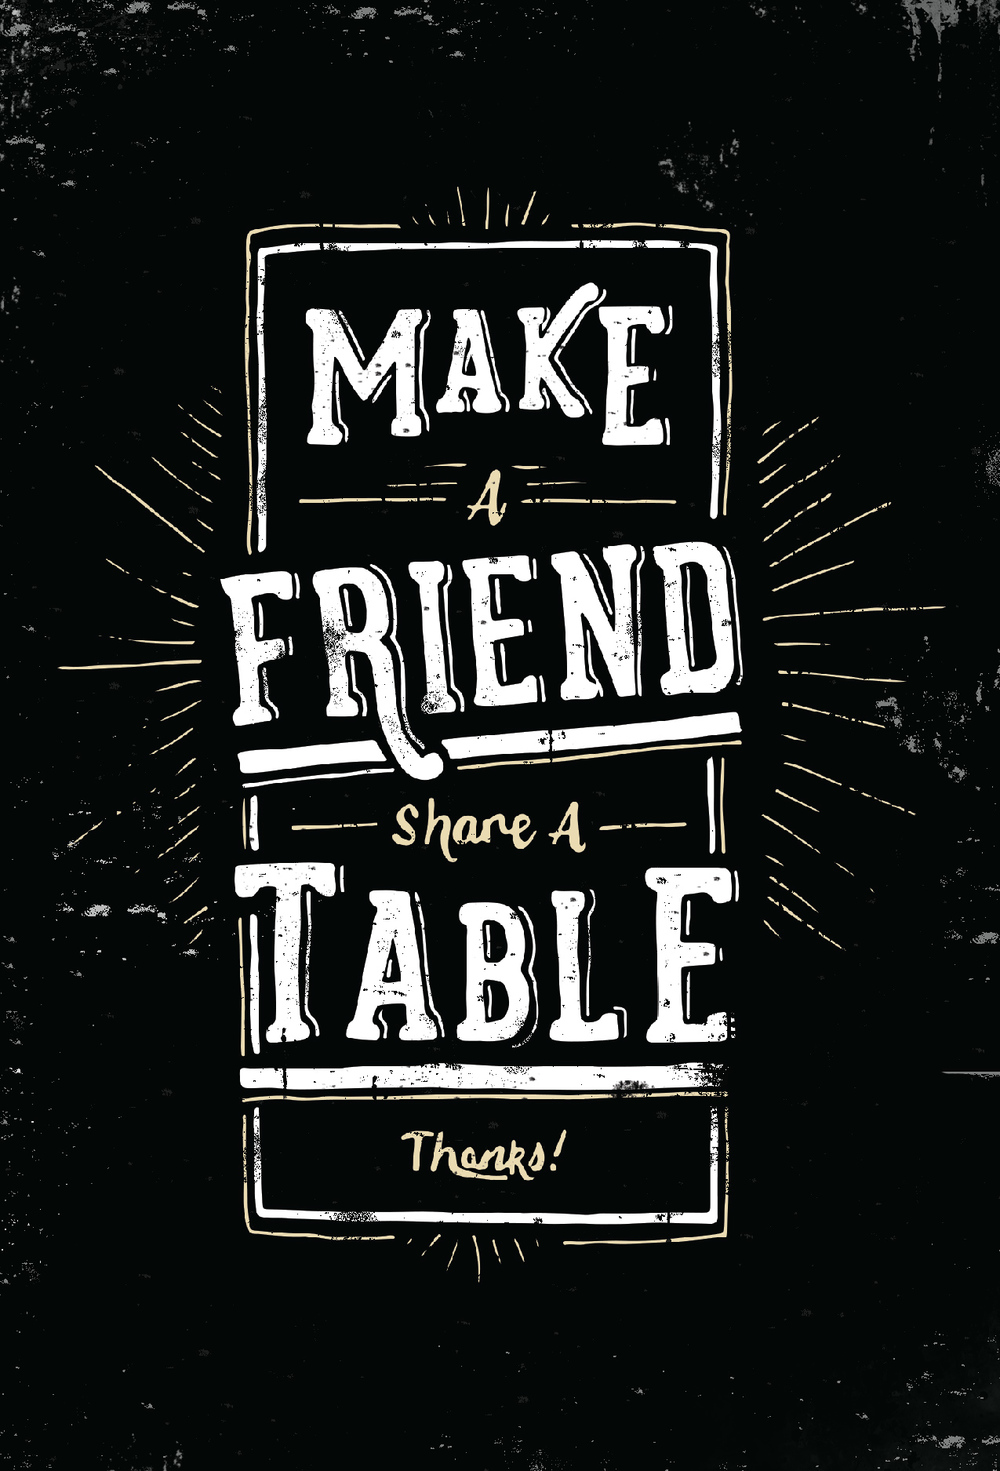 Hand-drawn ad for the restaurant to promote table sharing.